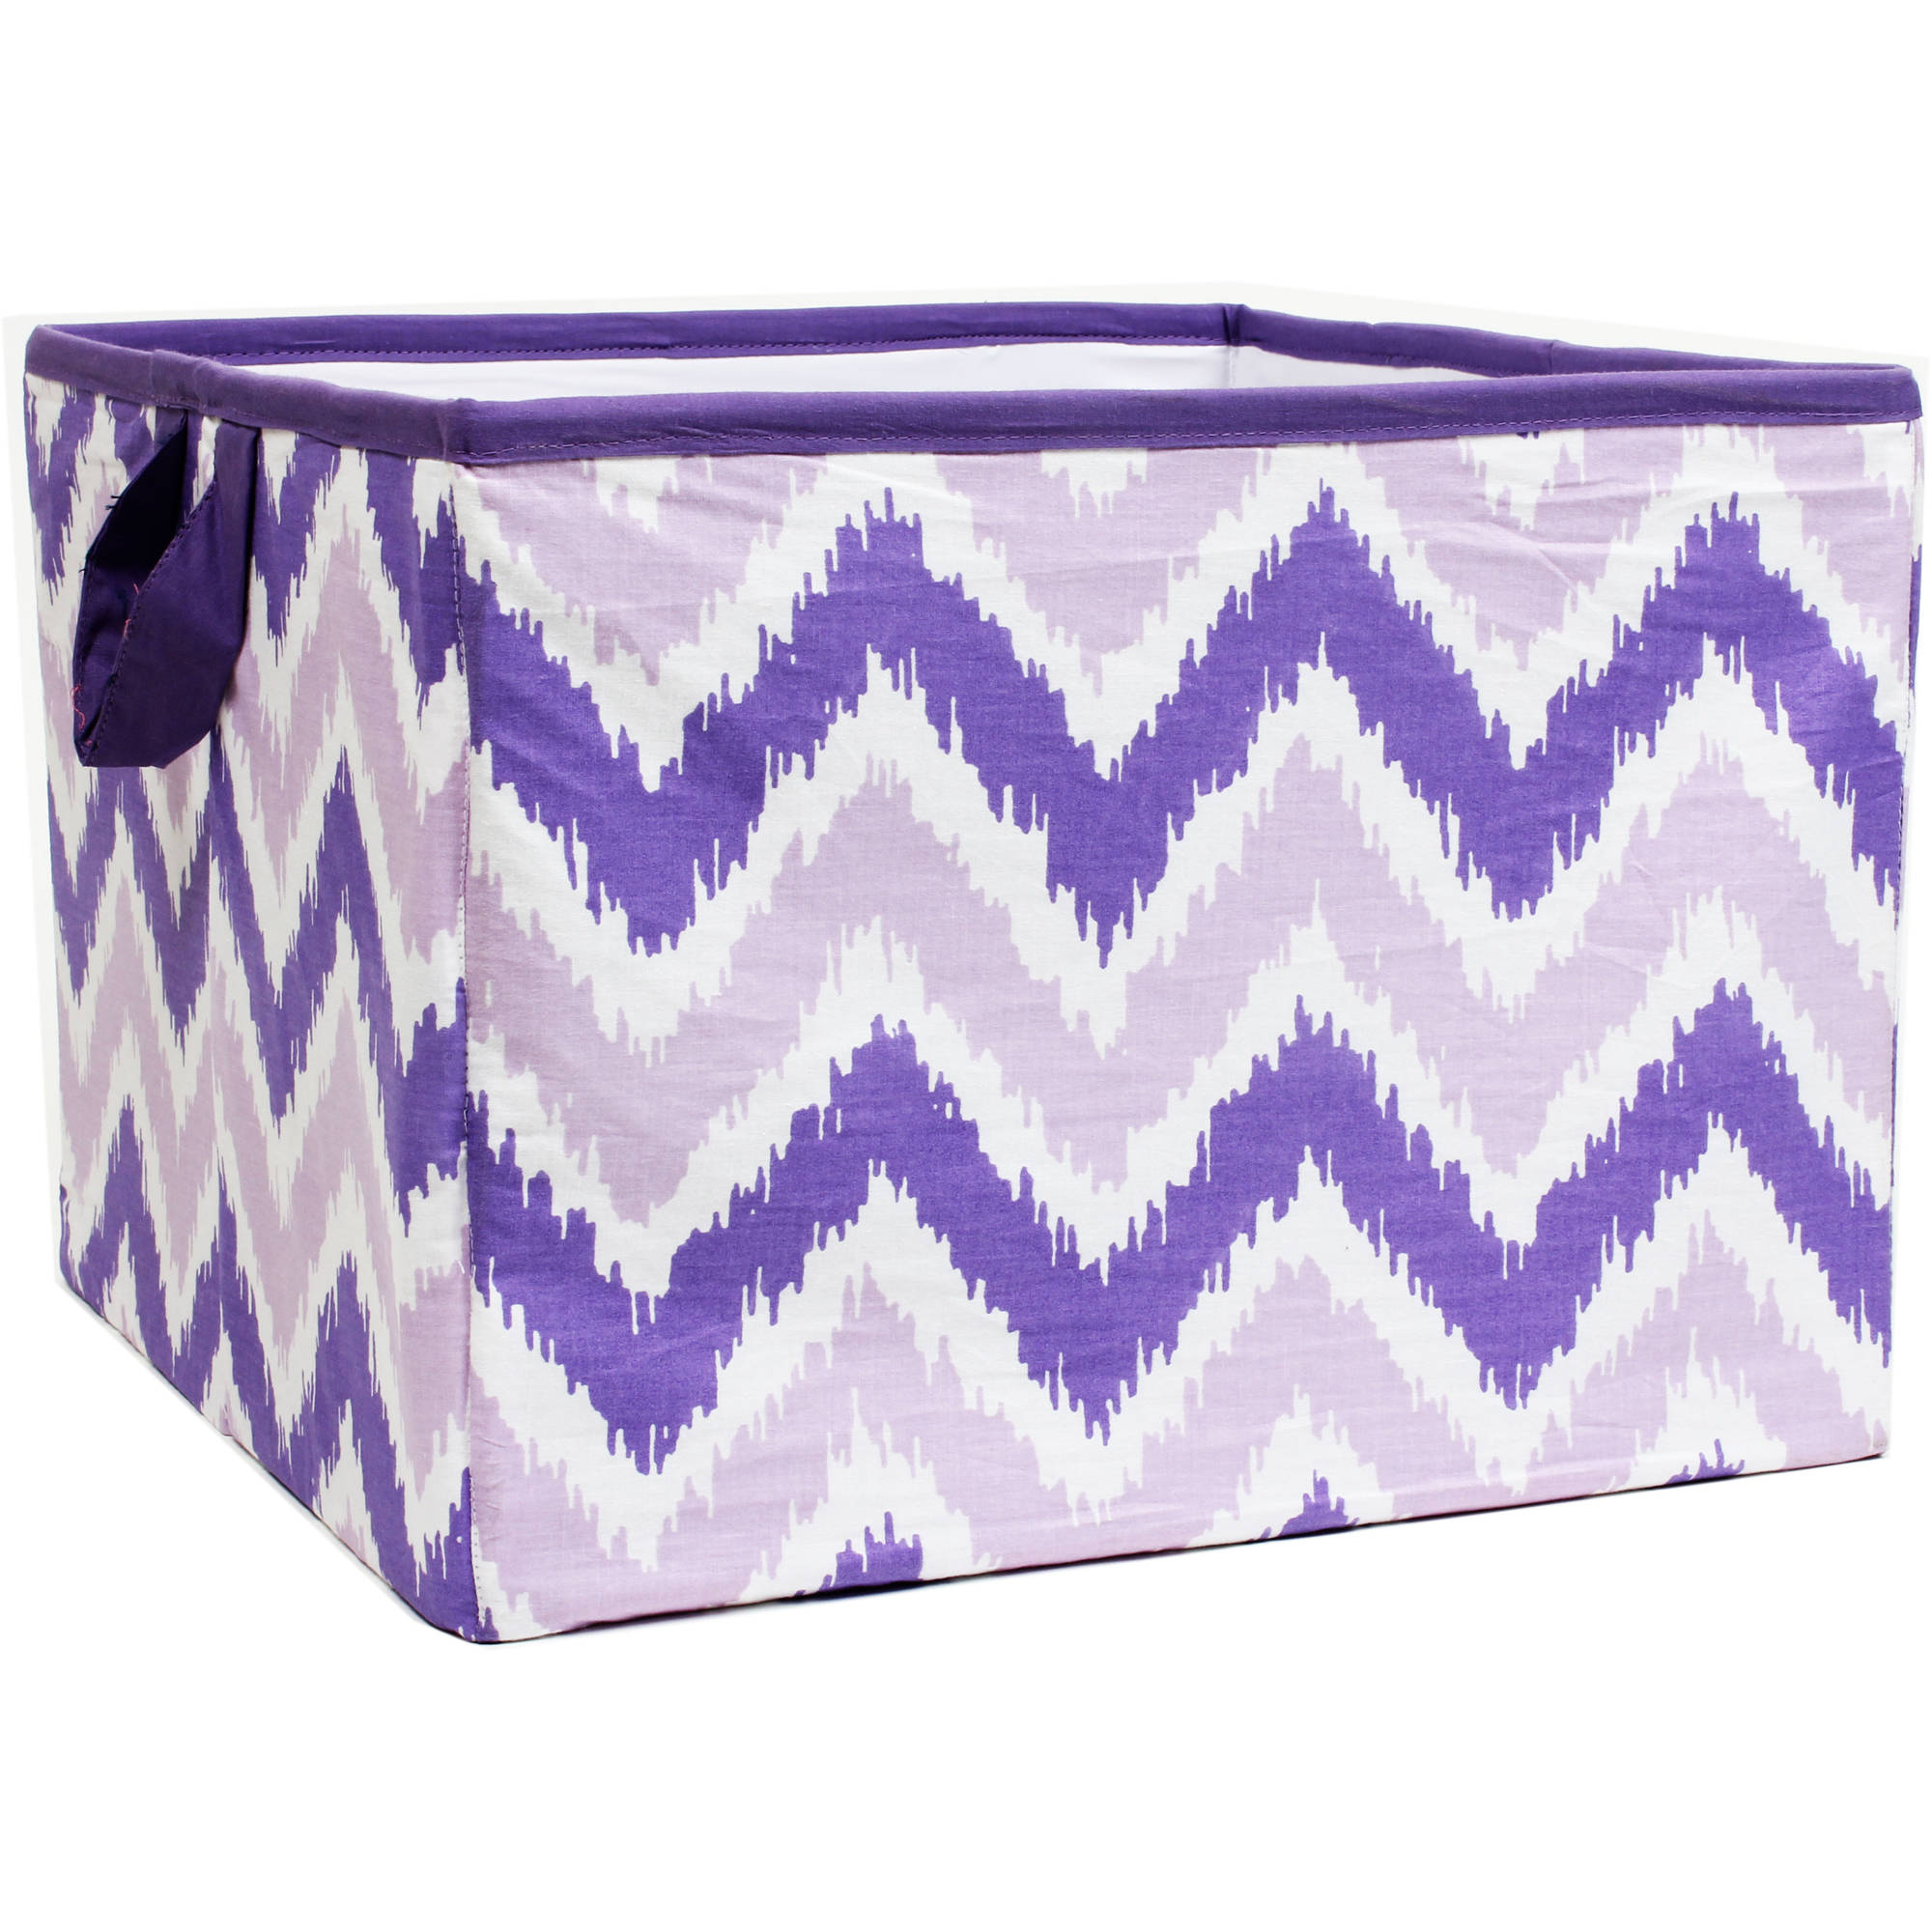 Bacati - MixNMatch Purple Zigzag Cotton Percale Fabric covered Storage, Large Box, 14 x 14 x 10 inches